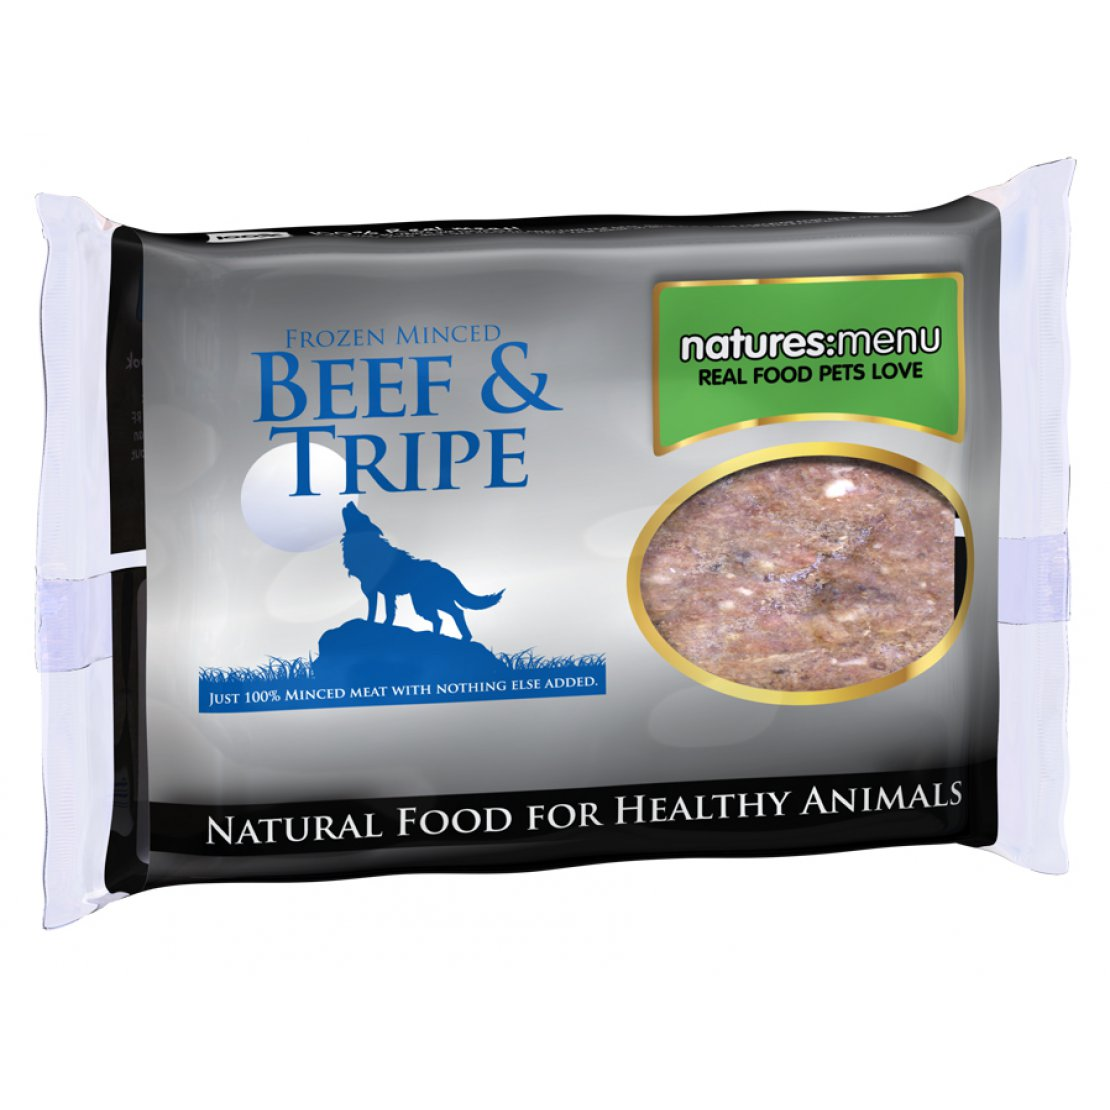 ONLY AVAILABLE FOR LOCAL DELIVERY. Natures Menu Frozen Dog Food. Beef & Tripe Mince